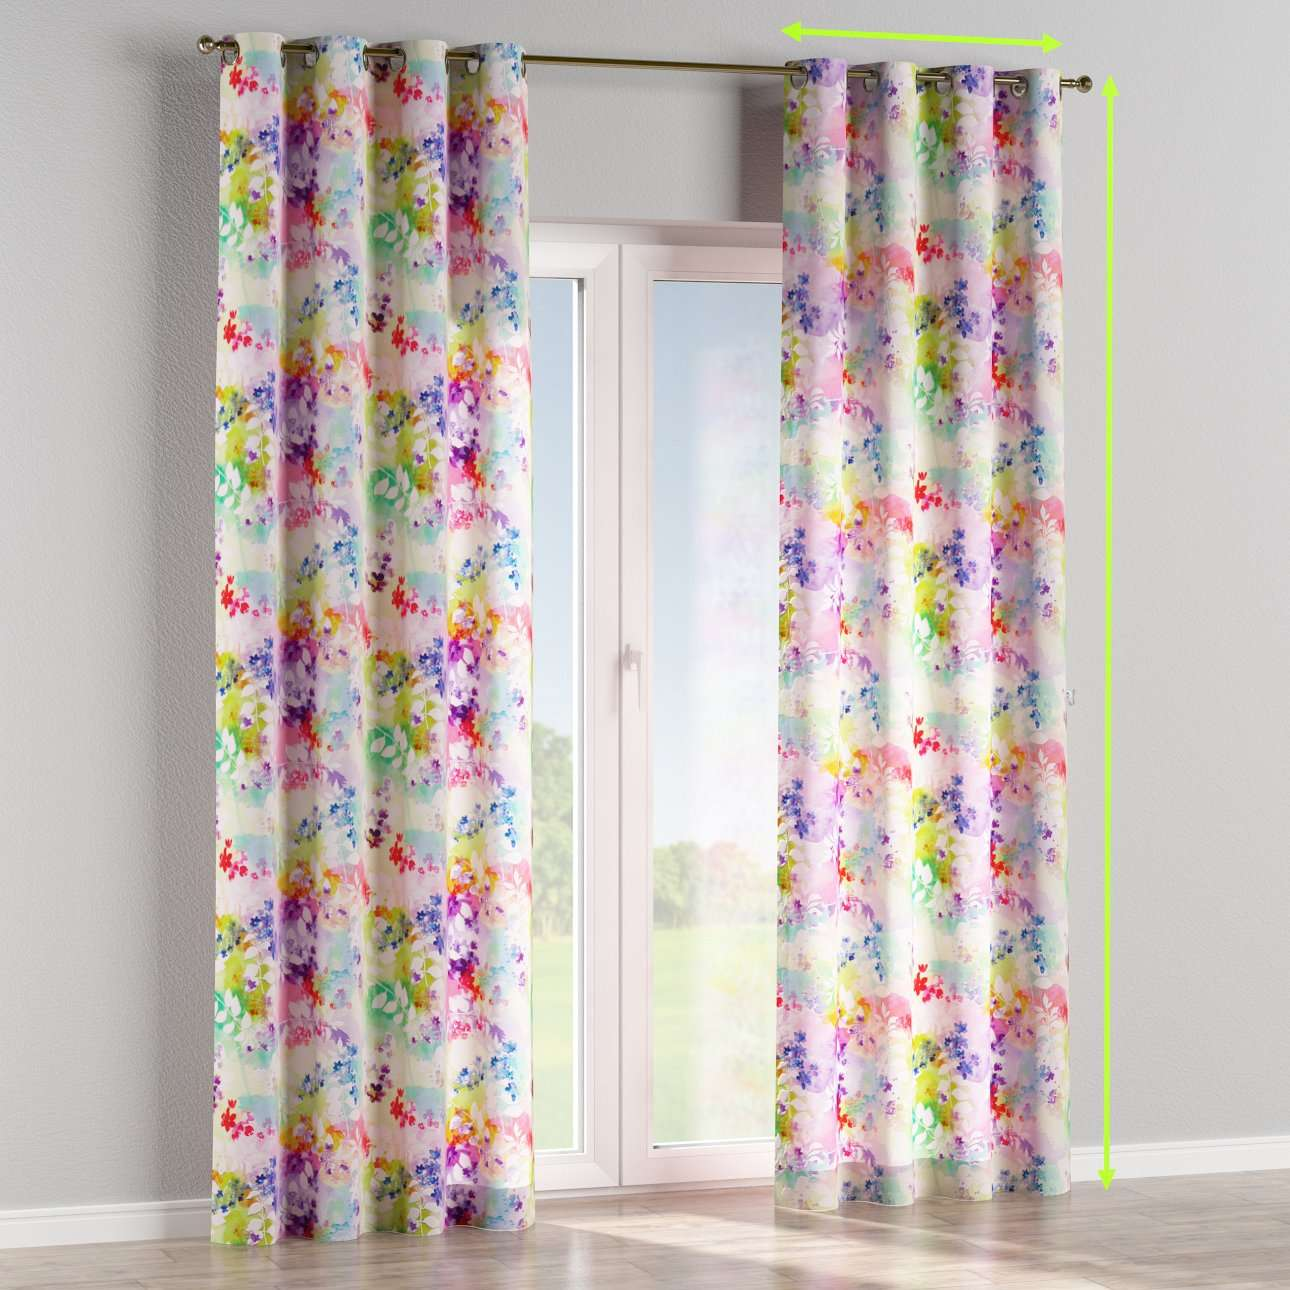 Eyelet curtains in collection Monet, fabric: 140-07